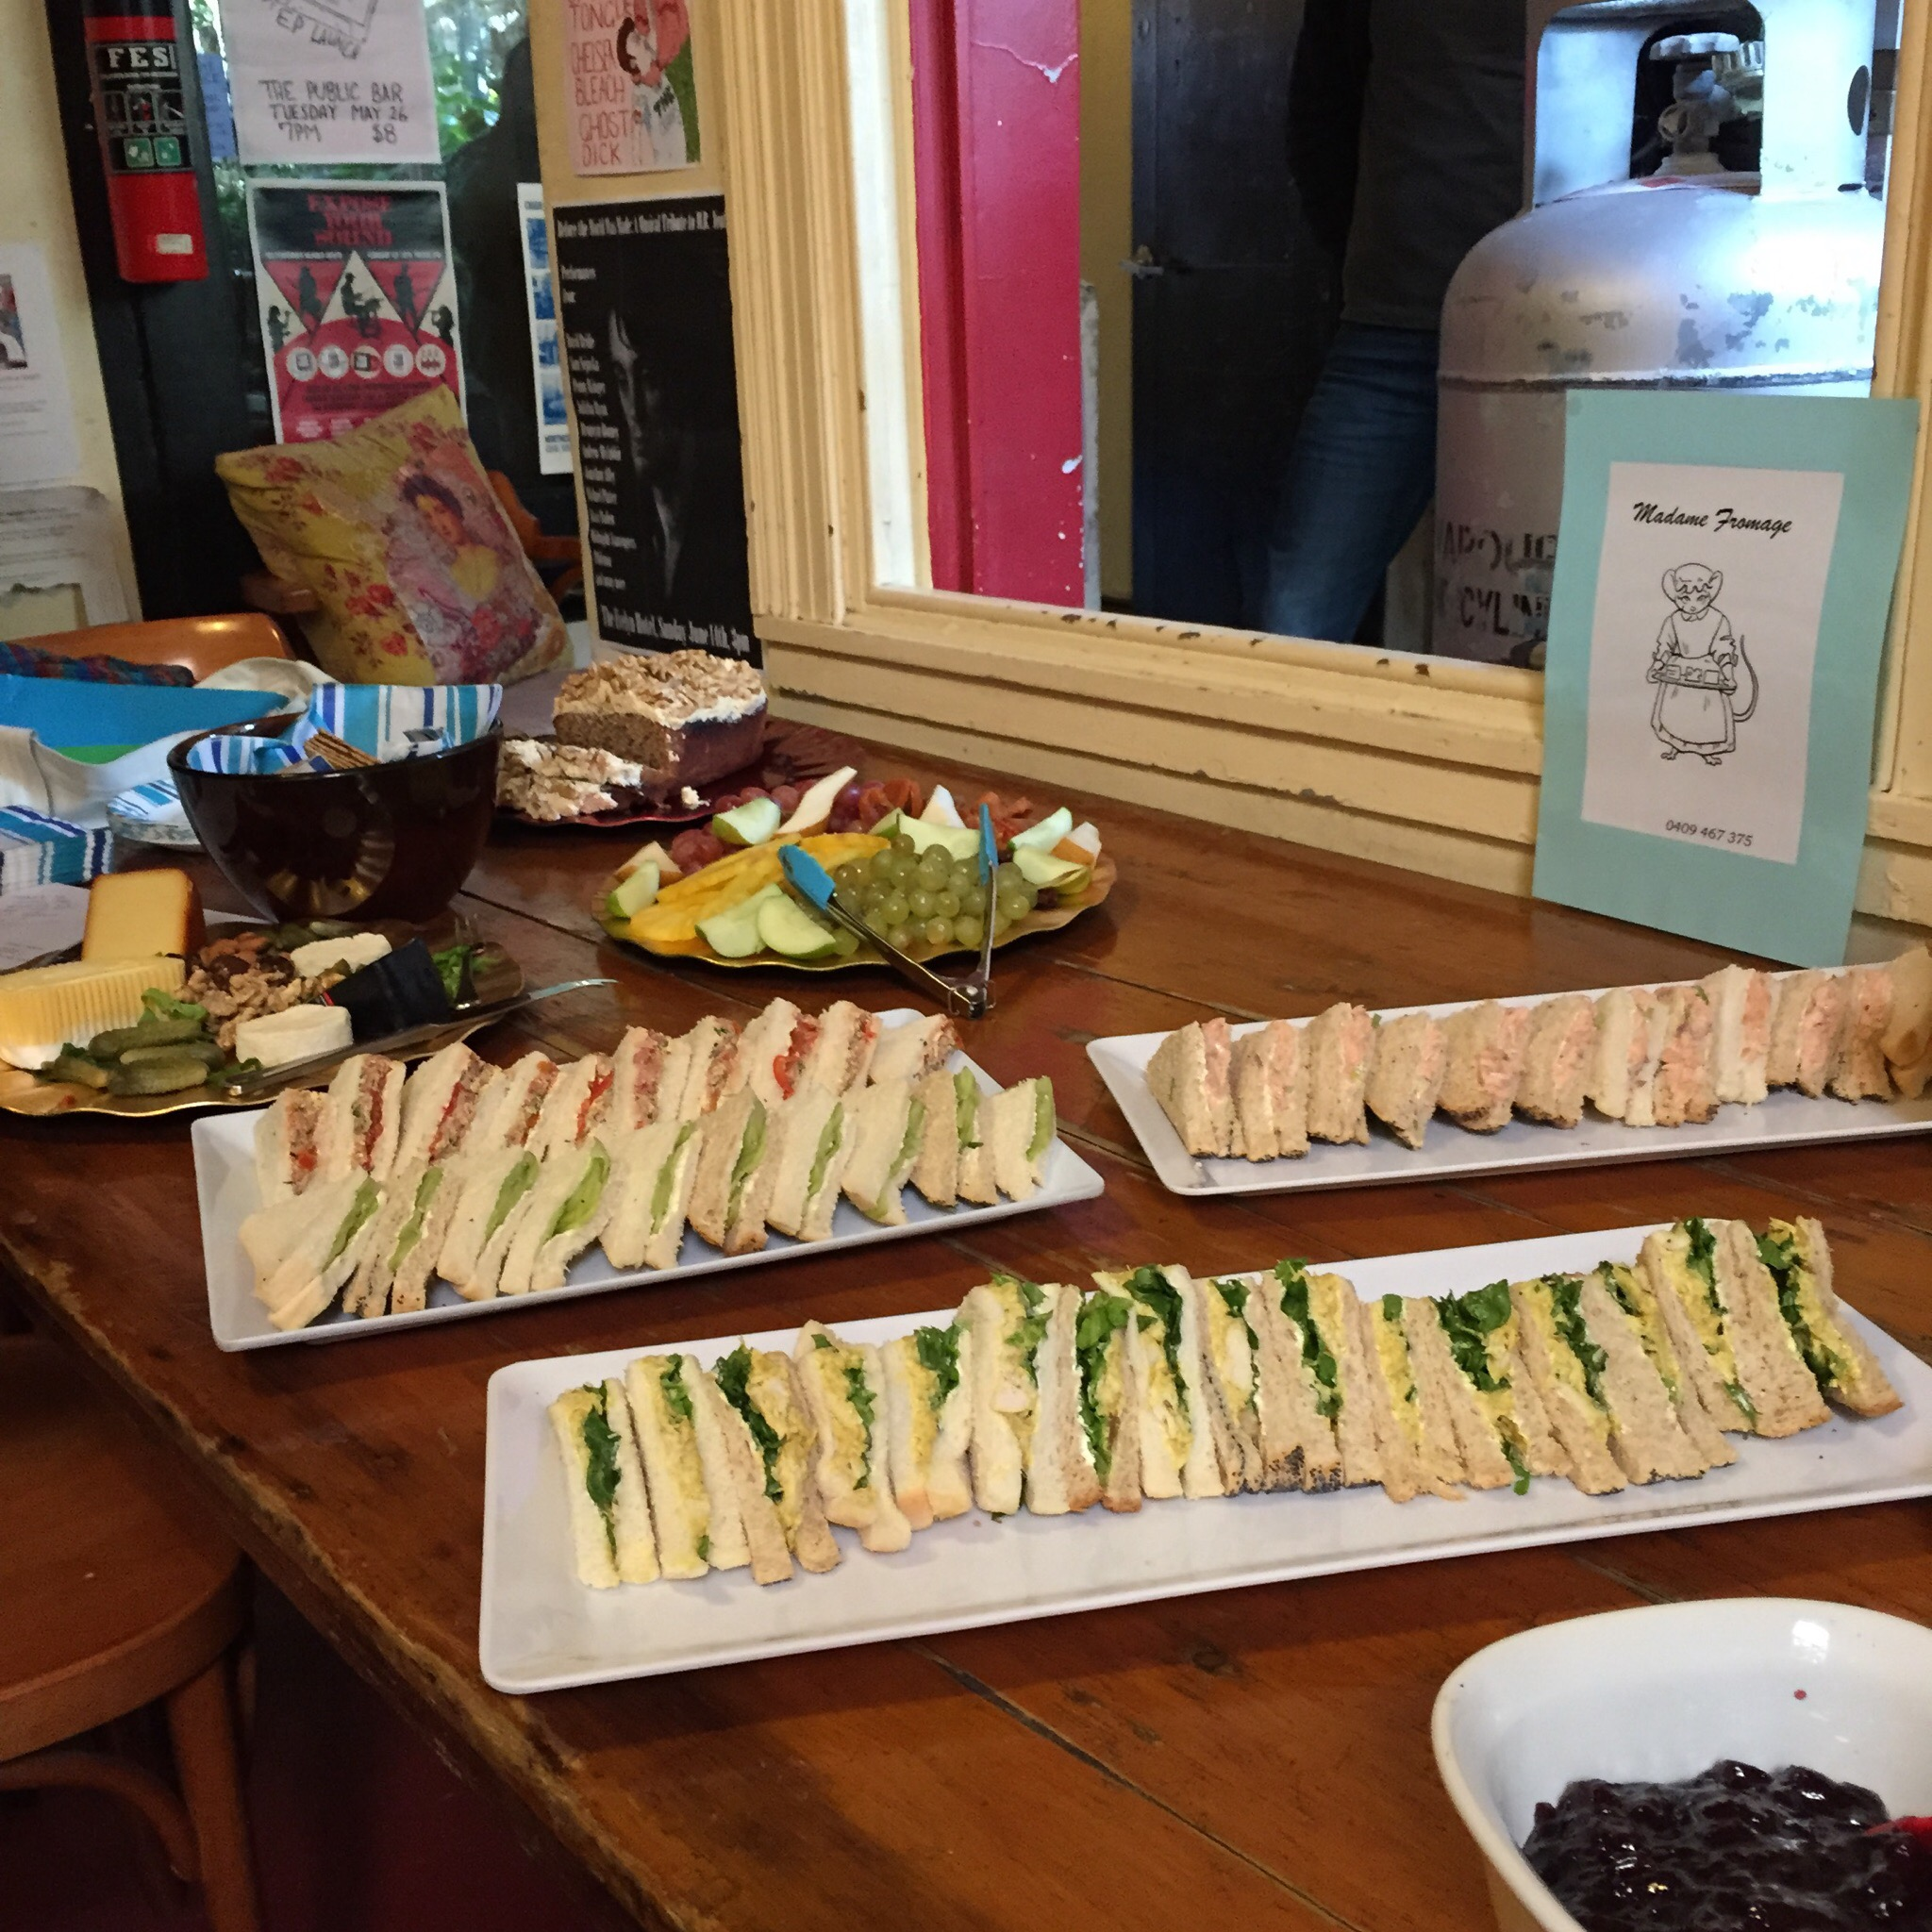 Plates of sandwiches, fruit, cheese and cake from Madame Fromage catering.